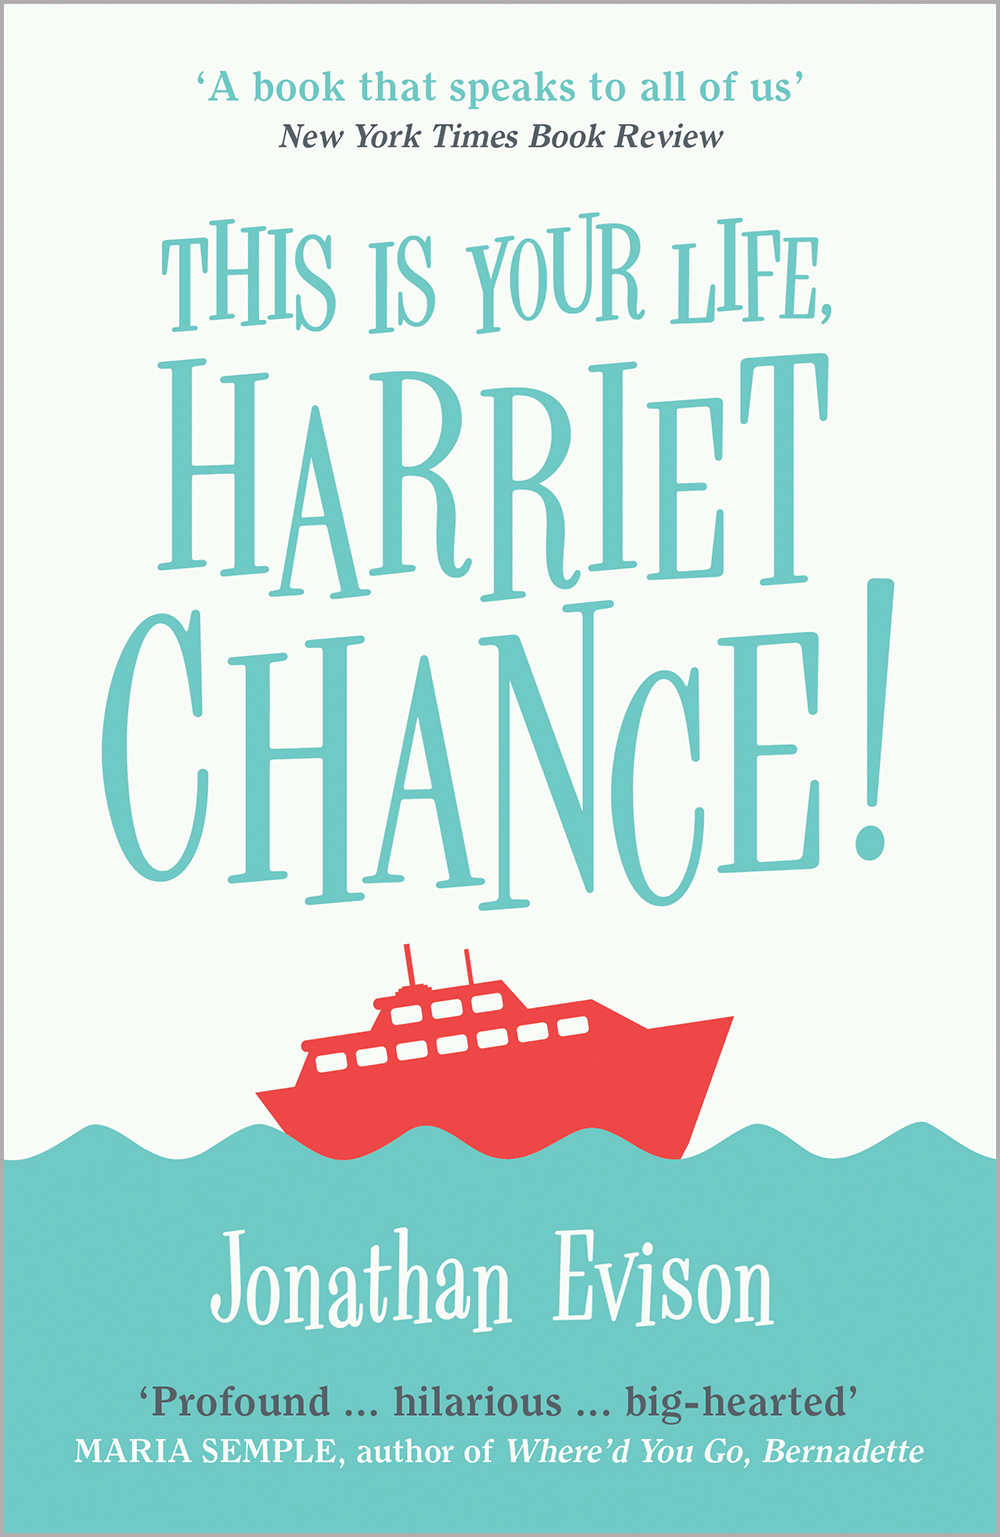 This Is Your Life Harriet Chance!.jpg